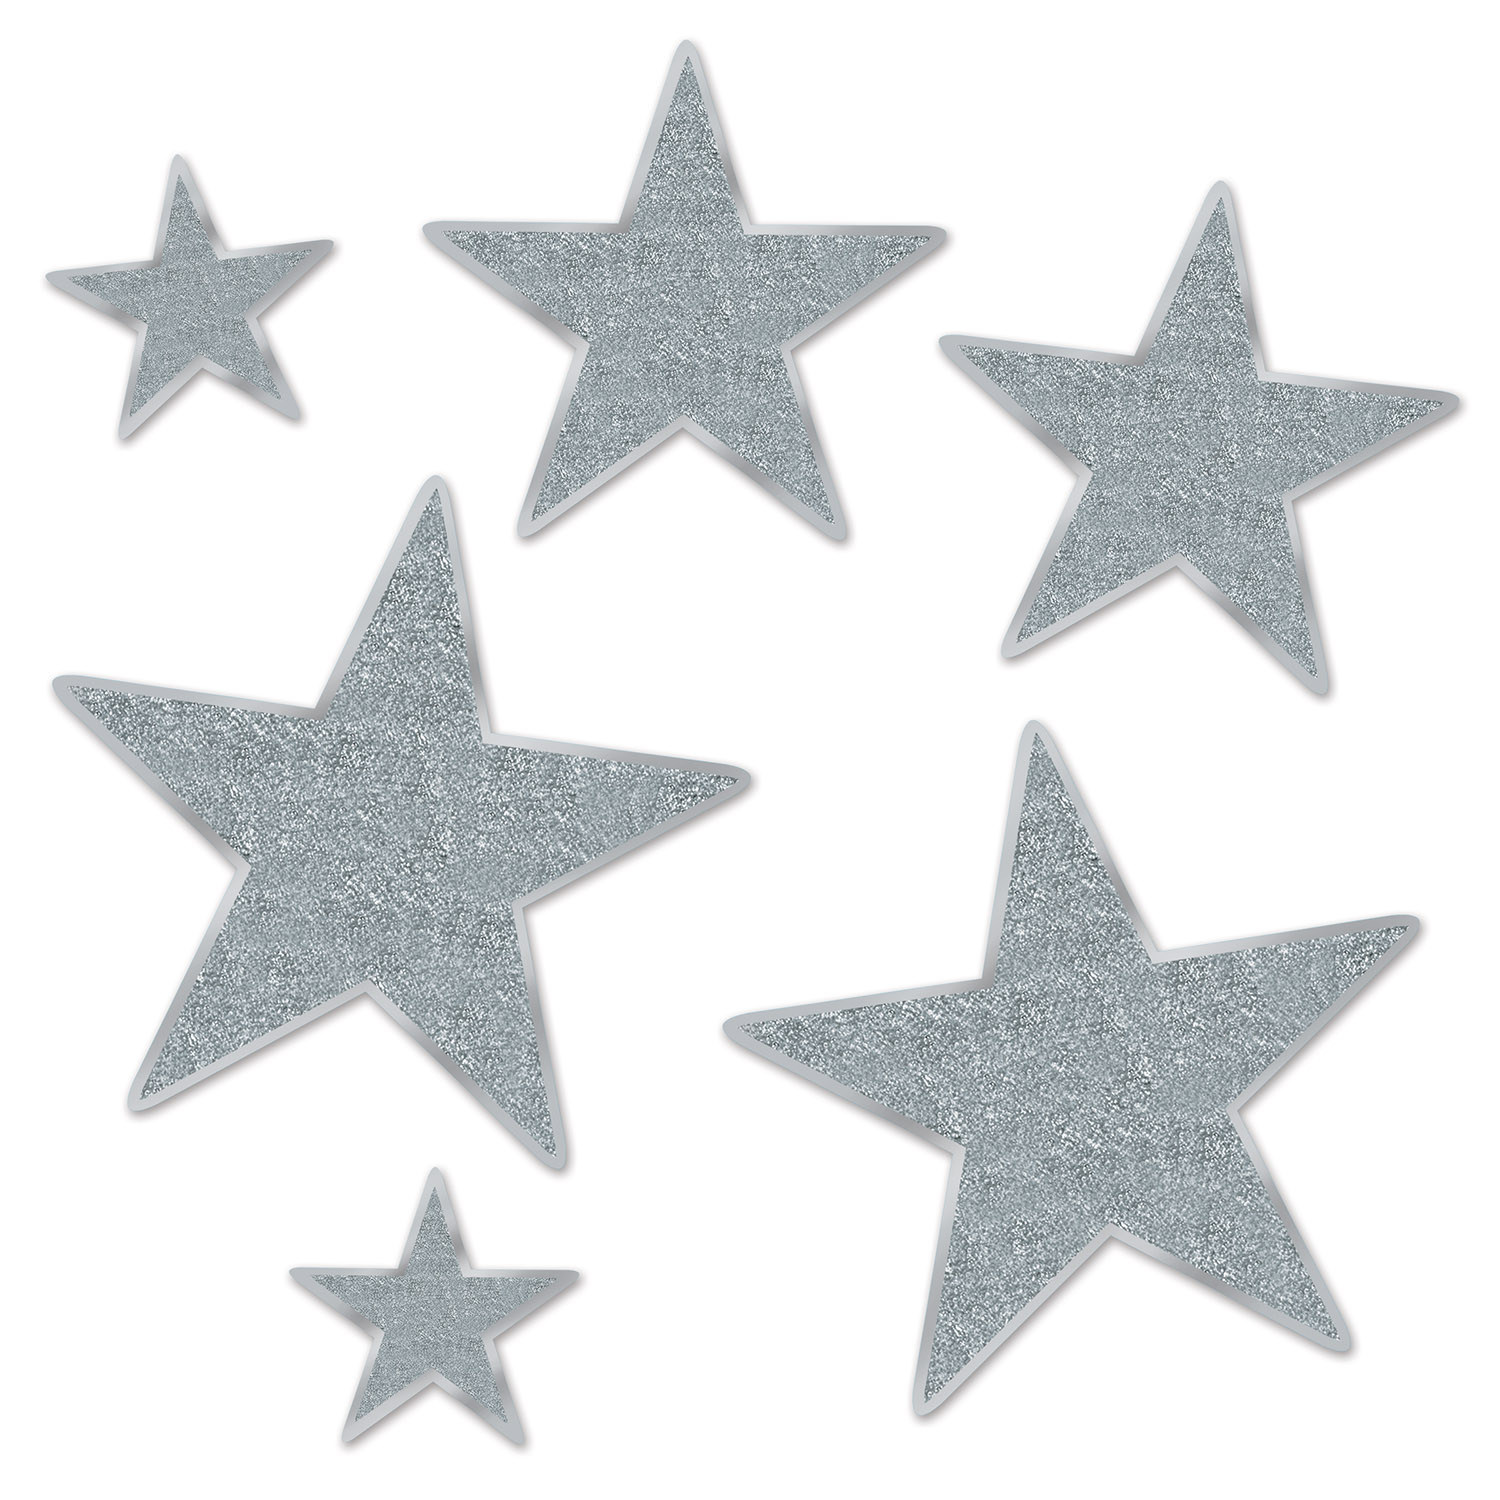 Assorted sized silver star cutouts with glitter.